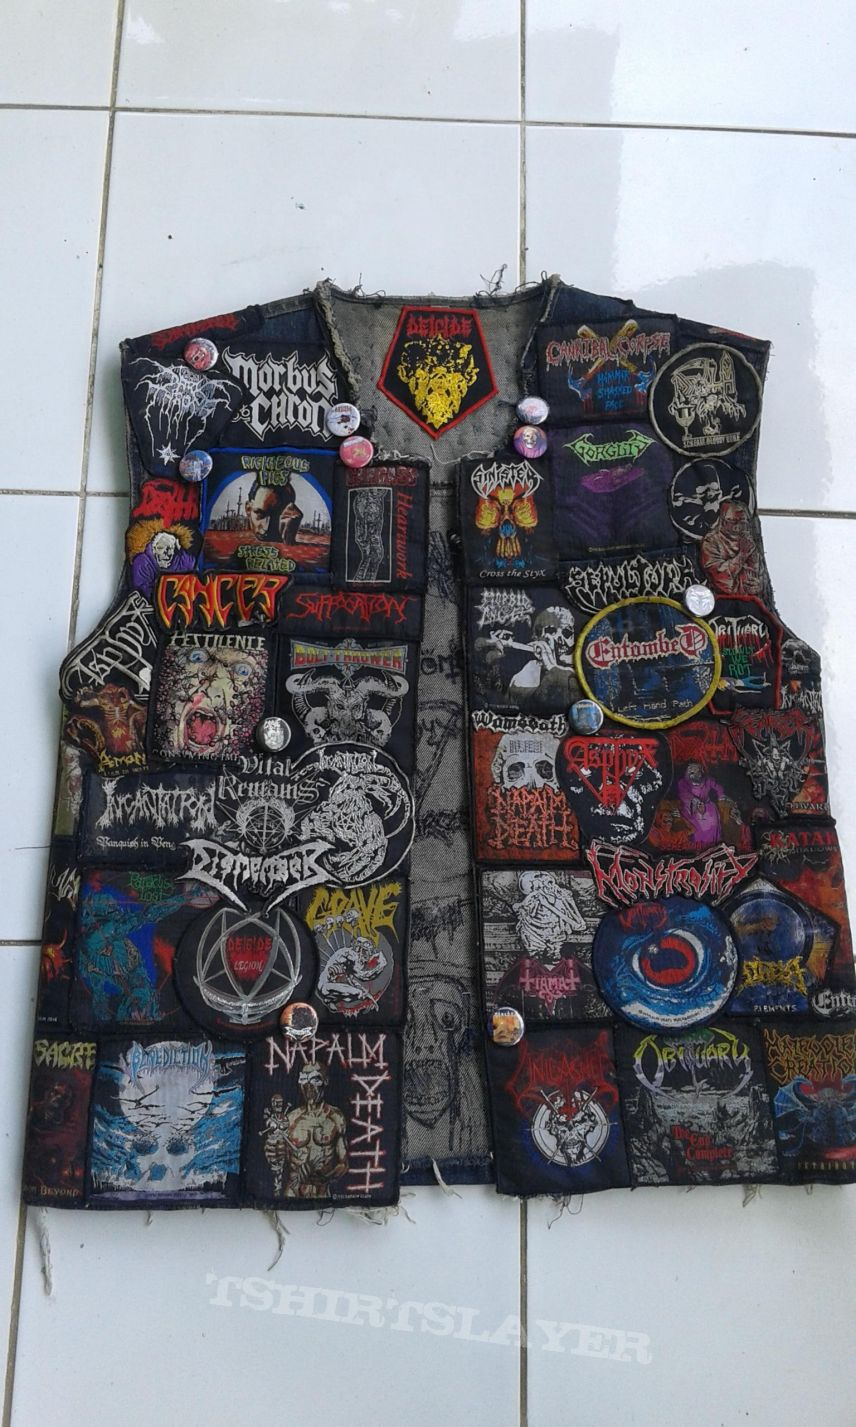 Just a little update on my vest